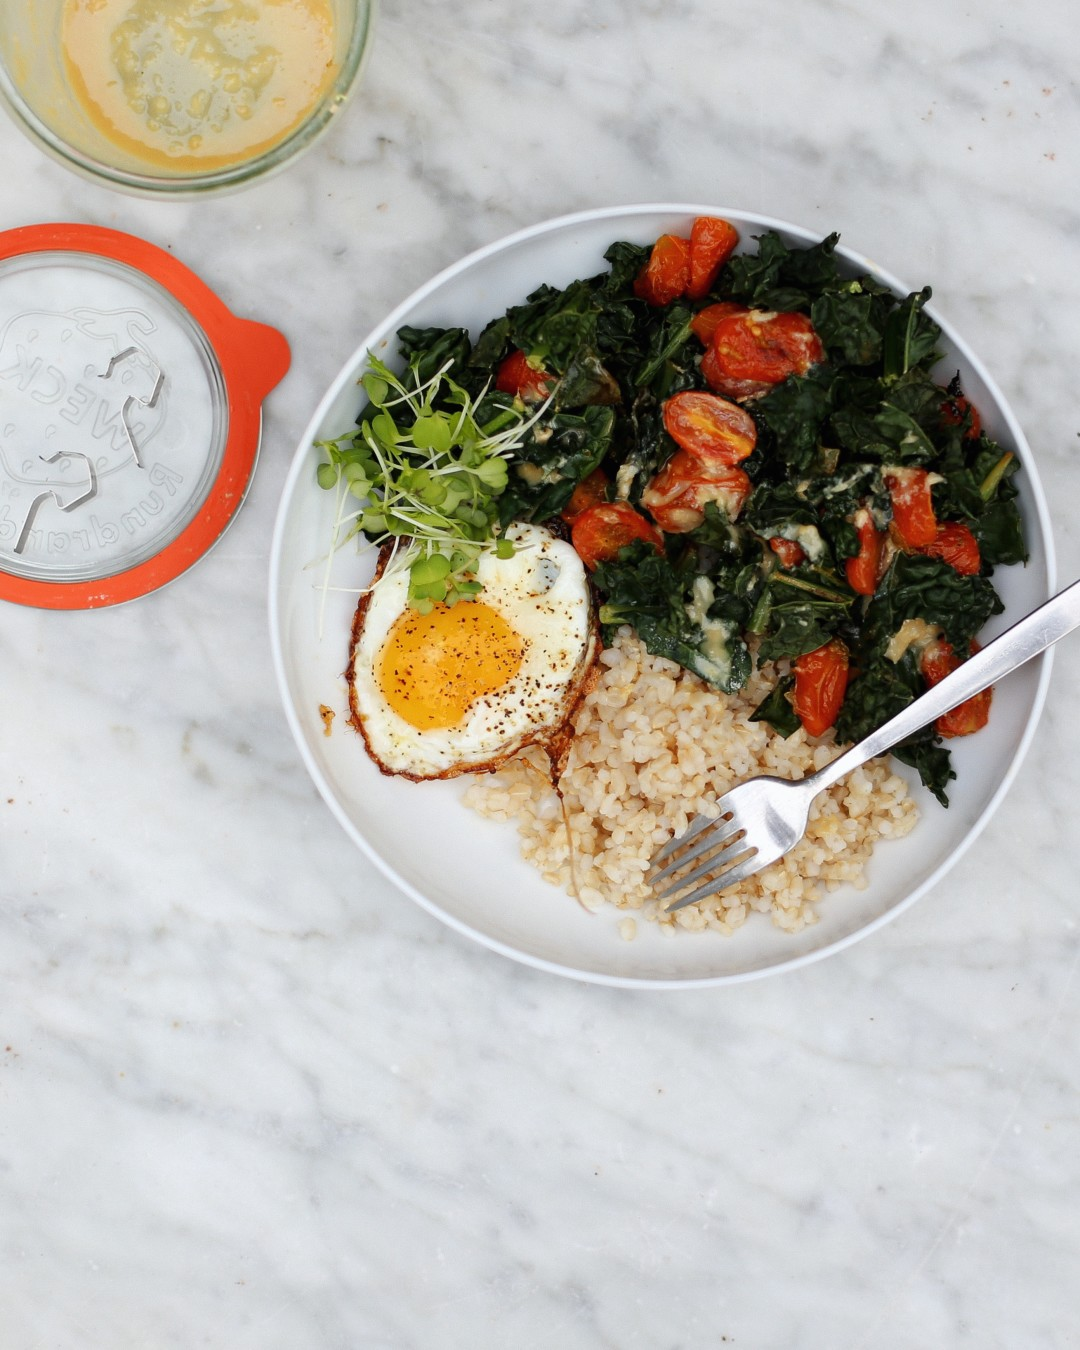 Low FODMAP Kale Salad